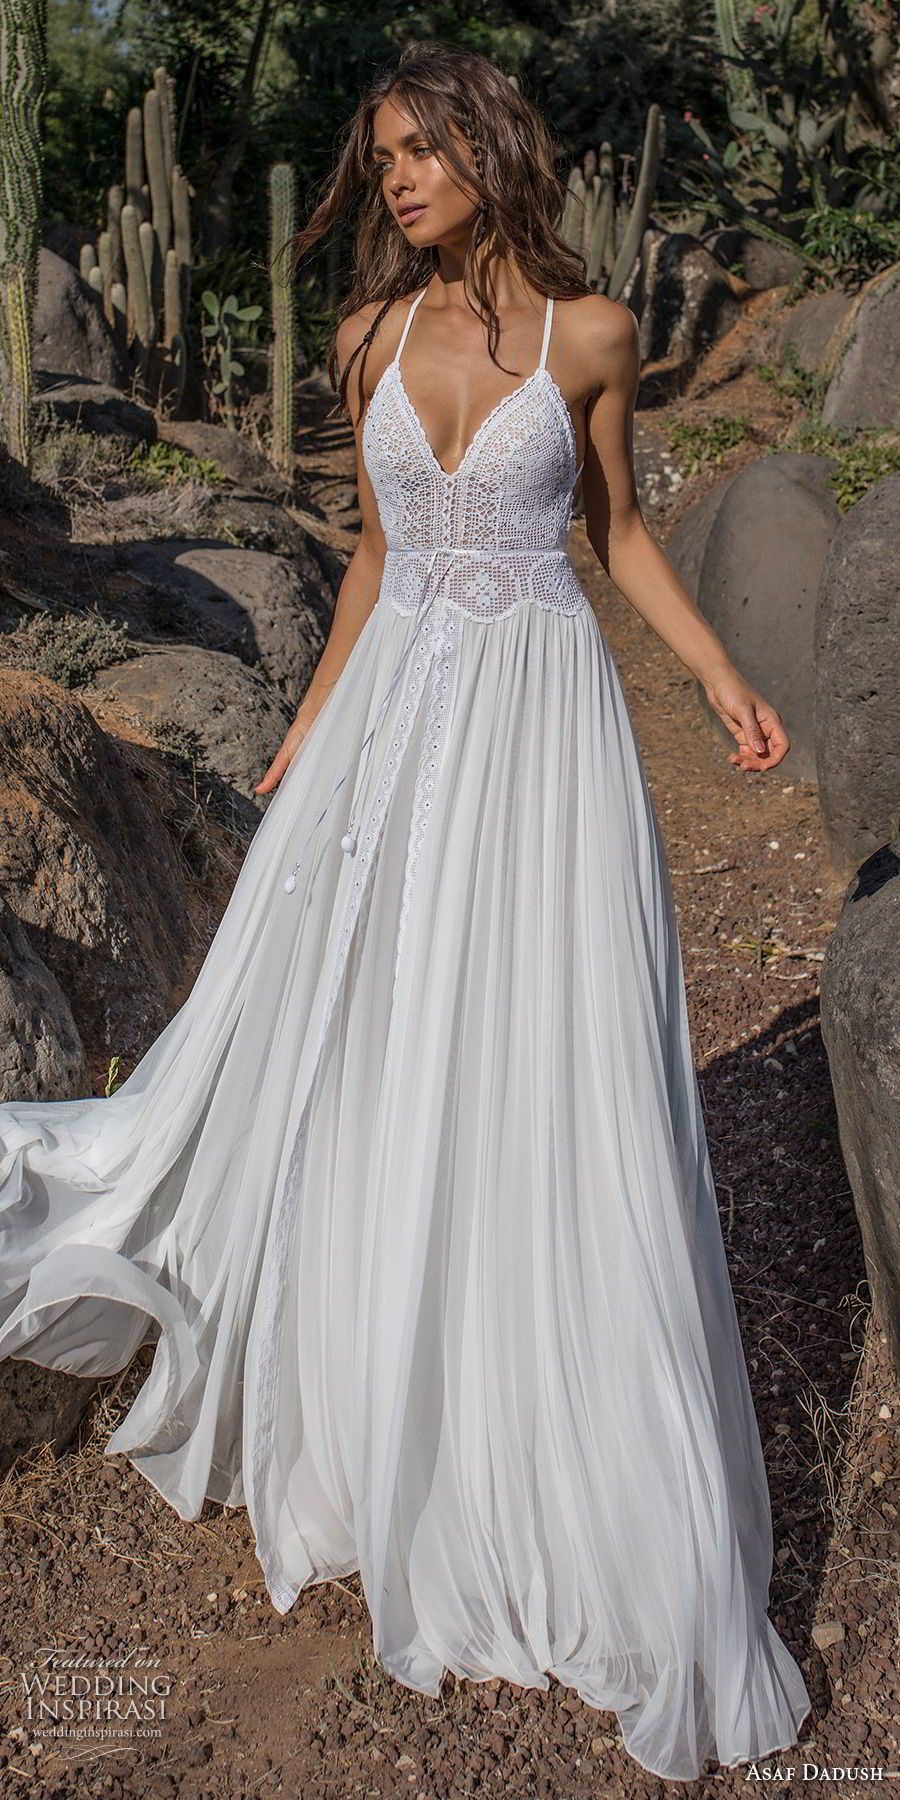 Asaf dadush wedding dresses novias pinterest bodice